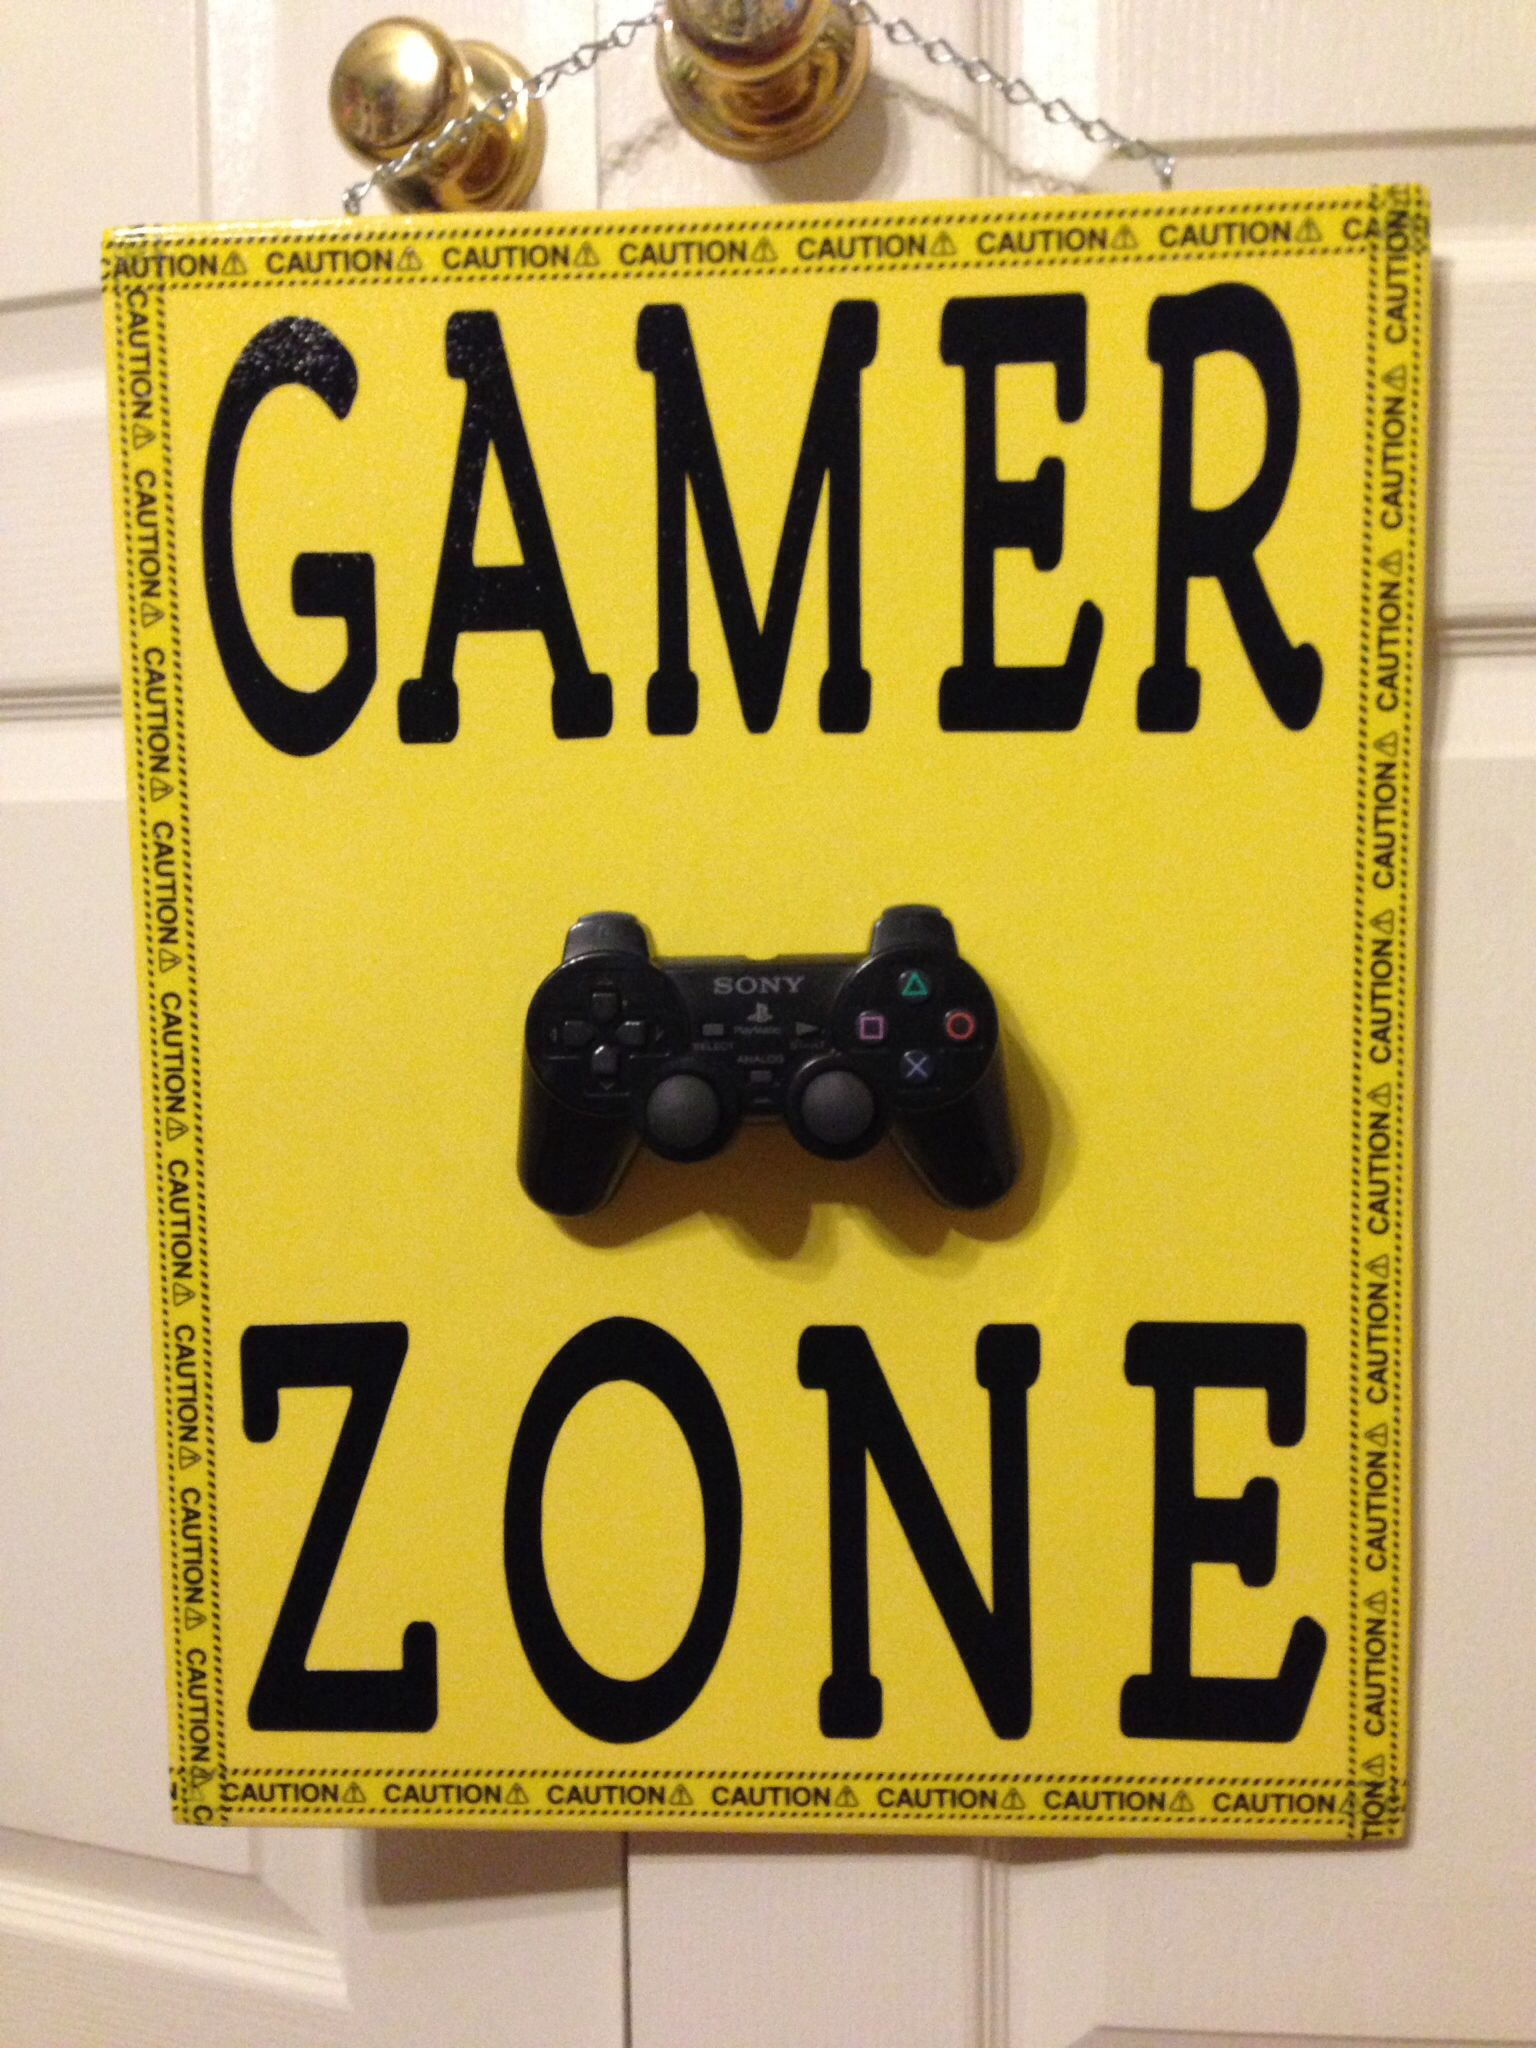 Gamer, Playstation sign made with old controller, caution